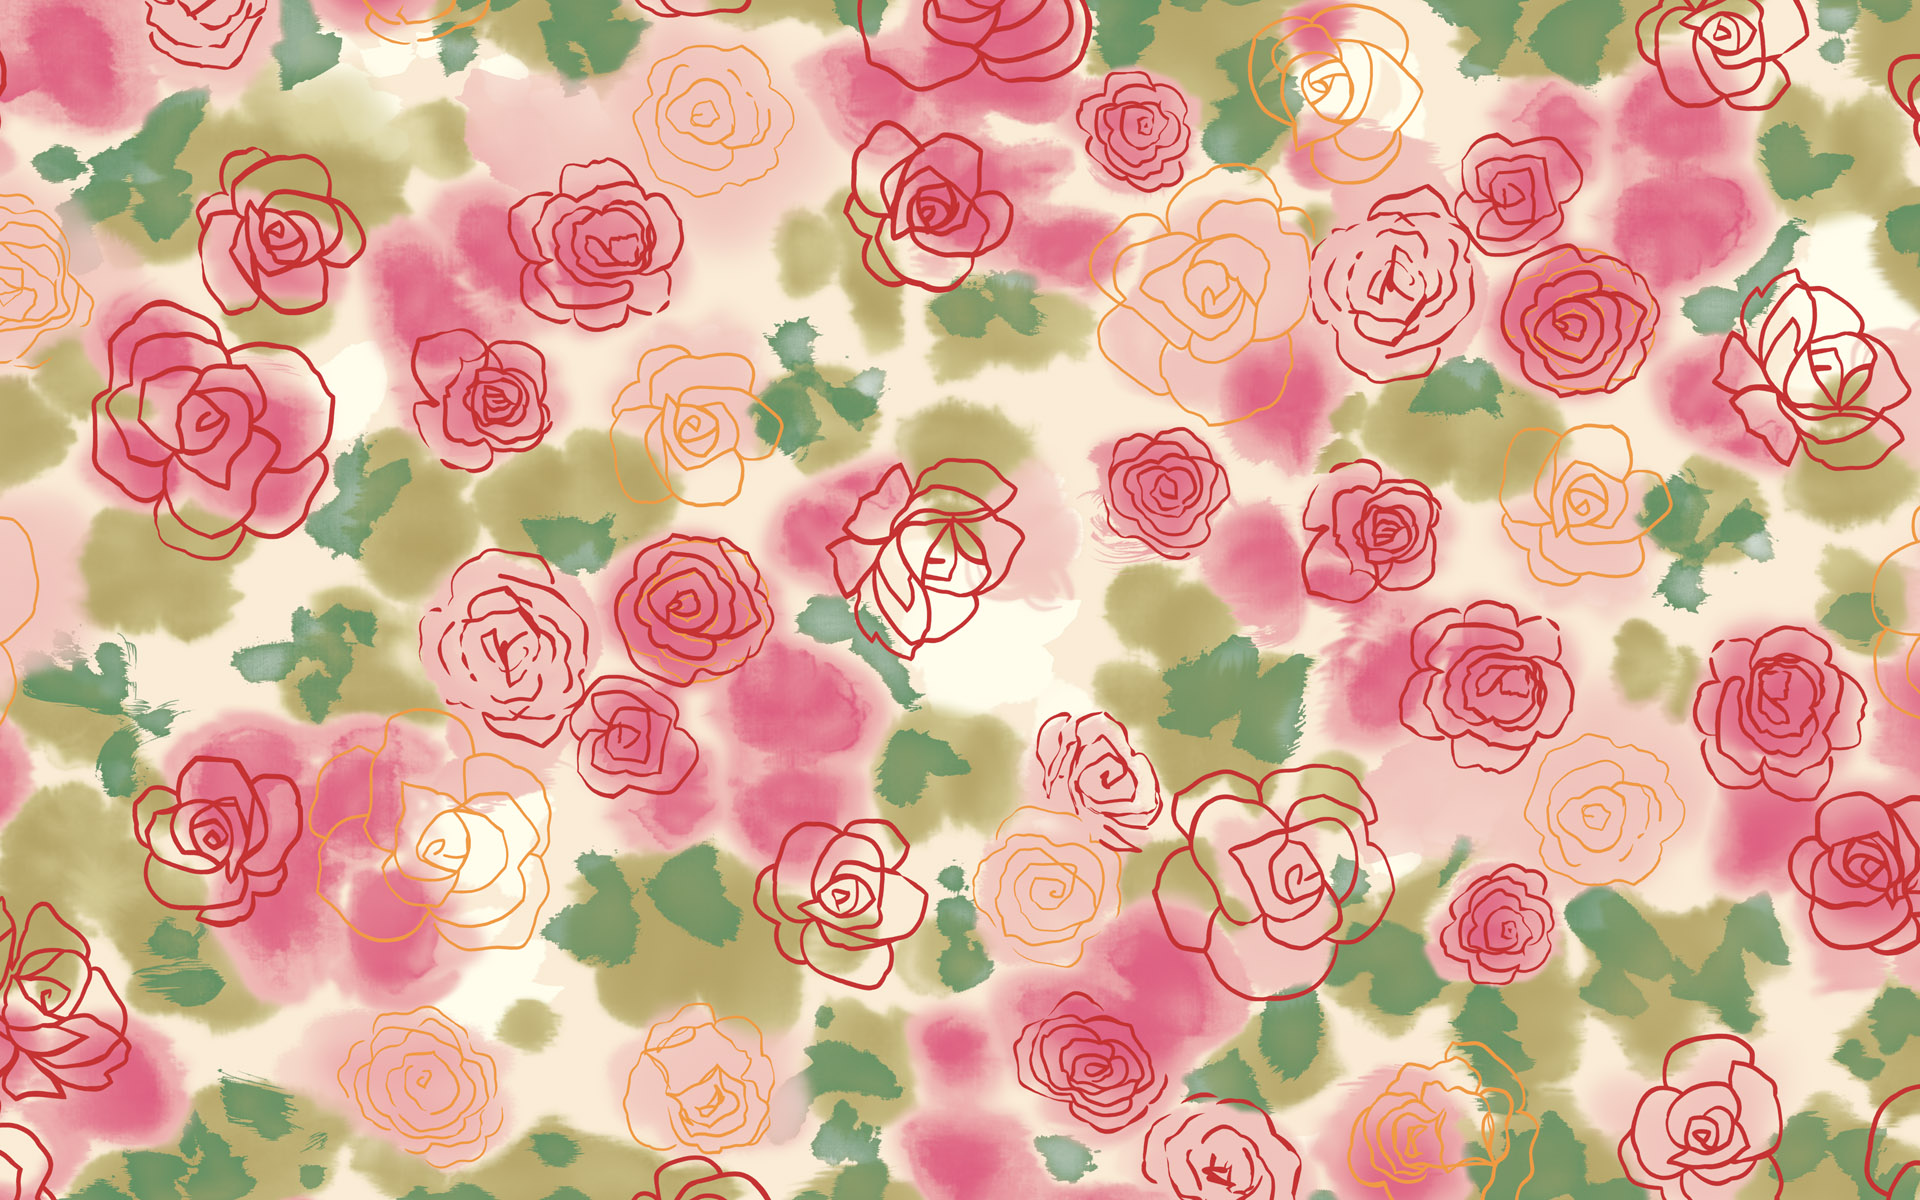 Background pattern photo